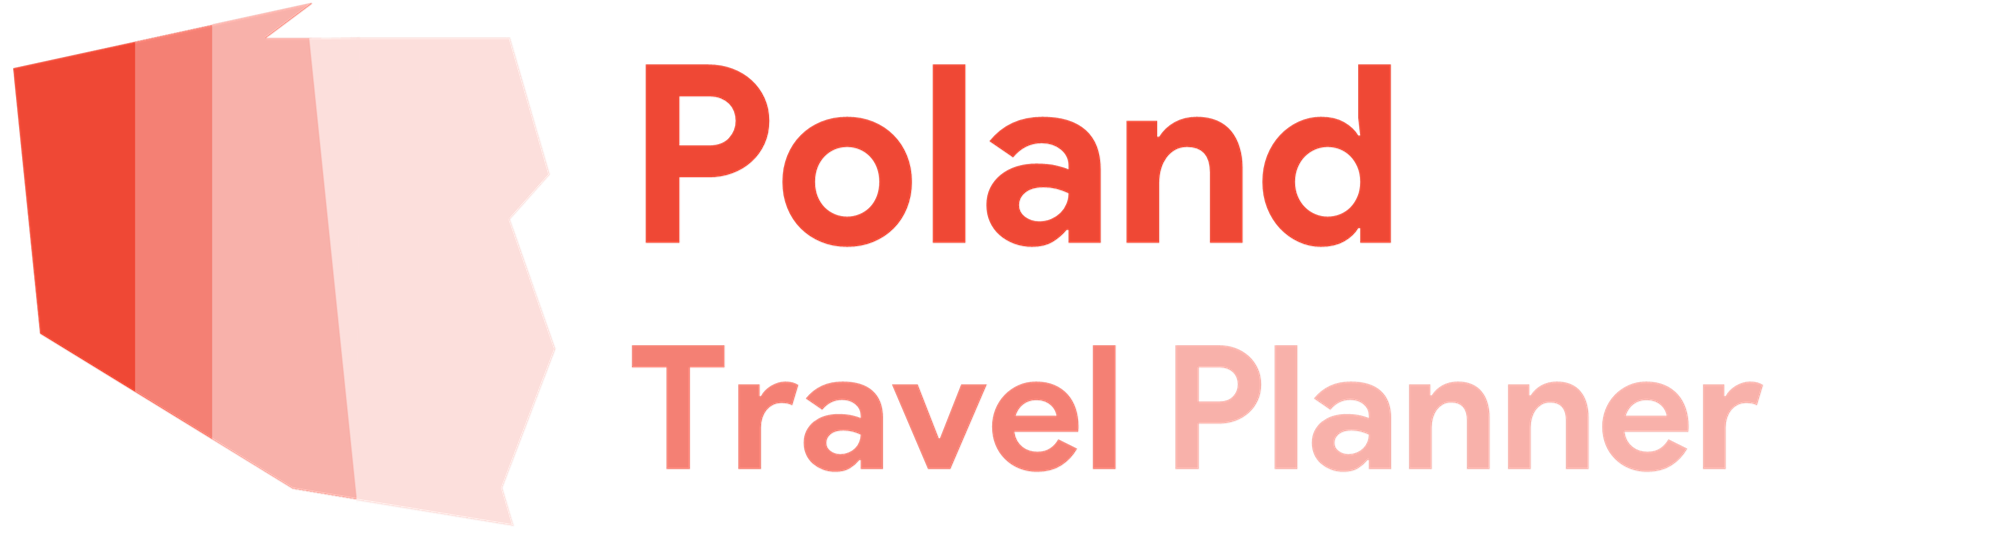 Poland Travel Planner Logo with striped outline of Poland